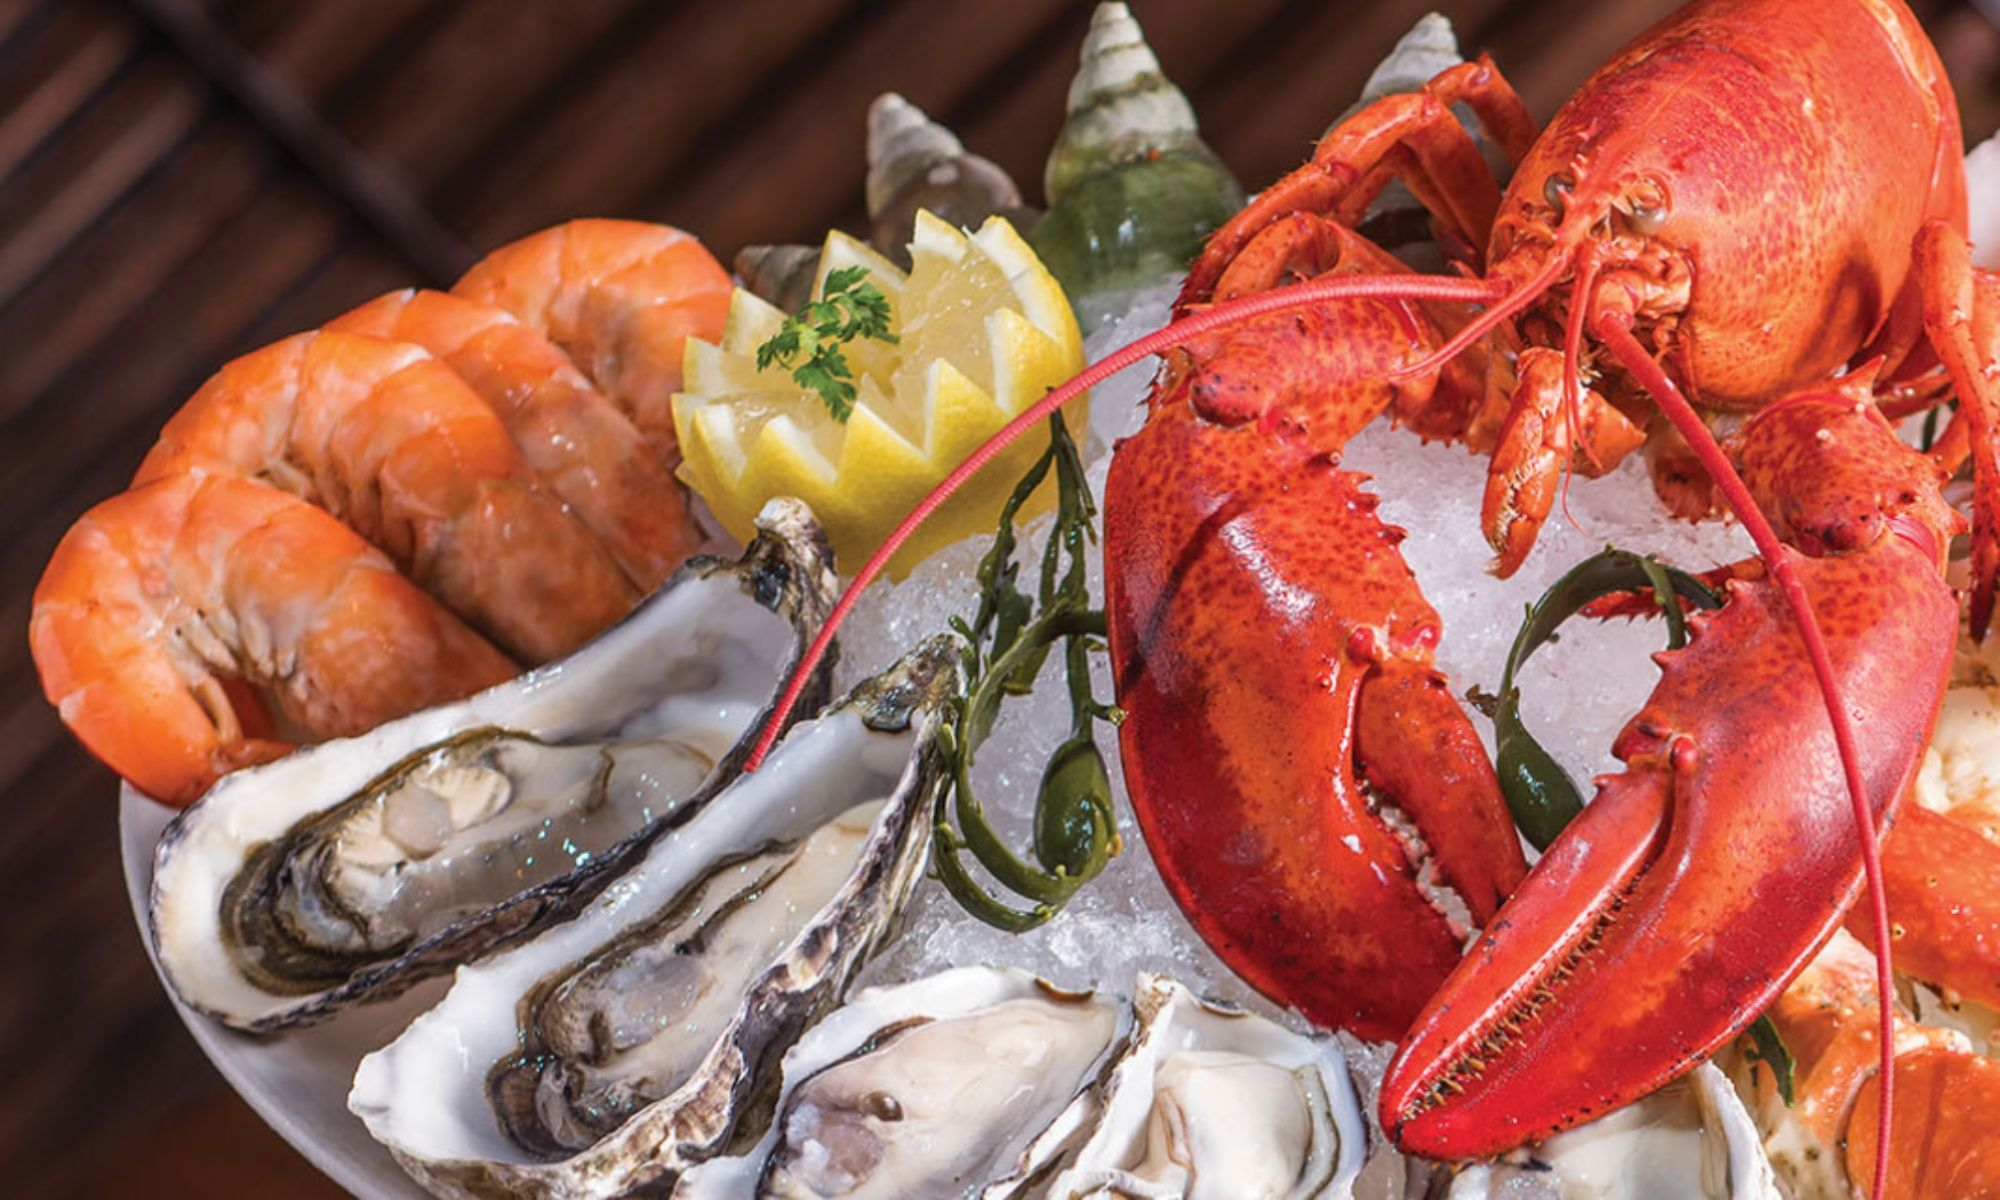 Bostonian Seafood & Grill offers Executive Power Lunches